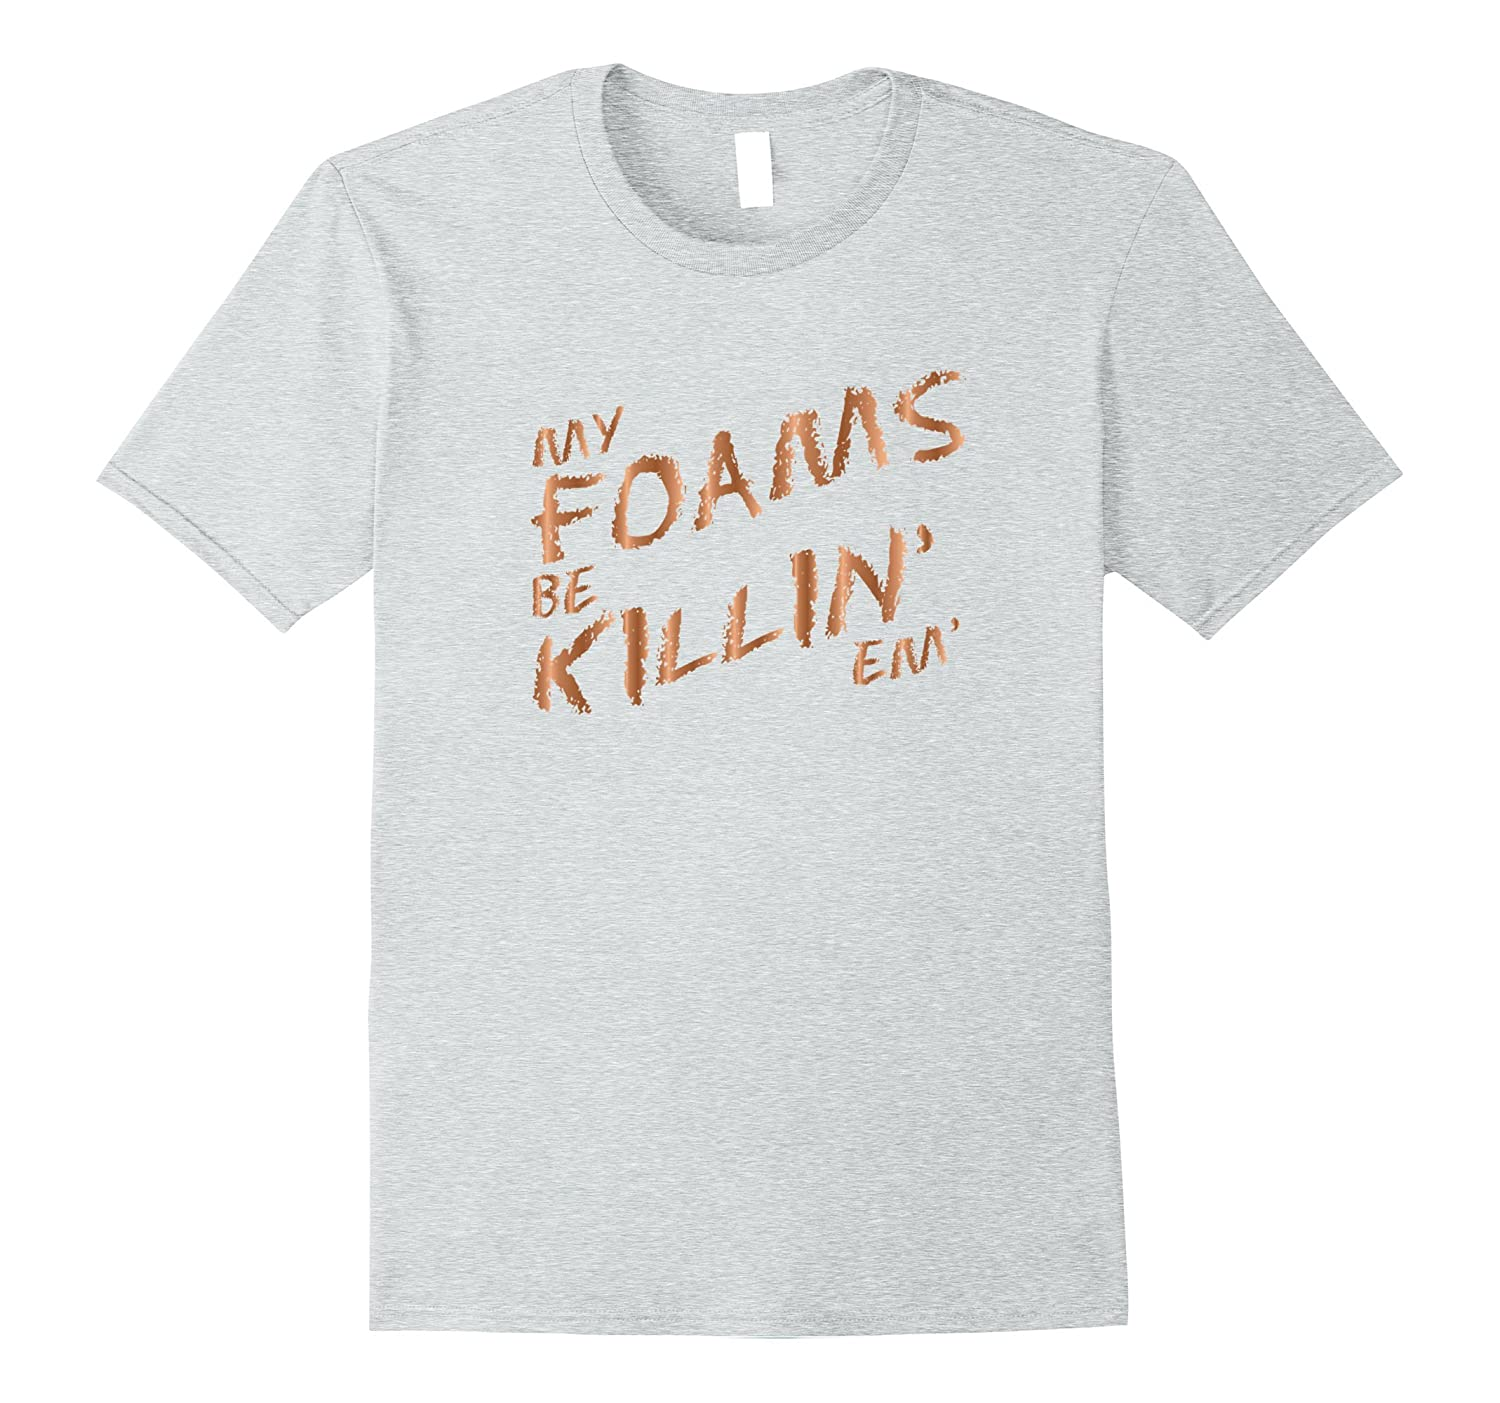 76cb9c6ec7c740 My Foams Be Killin Em Copper Sneaker T-Shirt Foamposite-BN – Banazatee